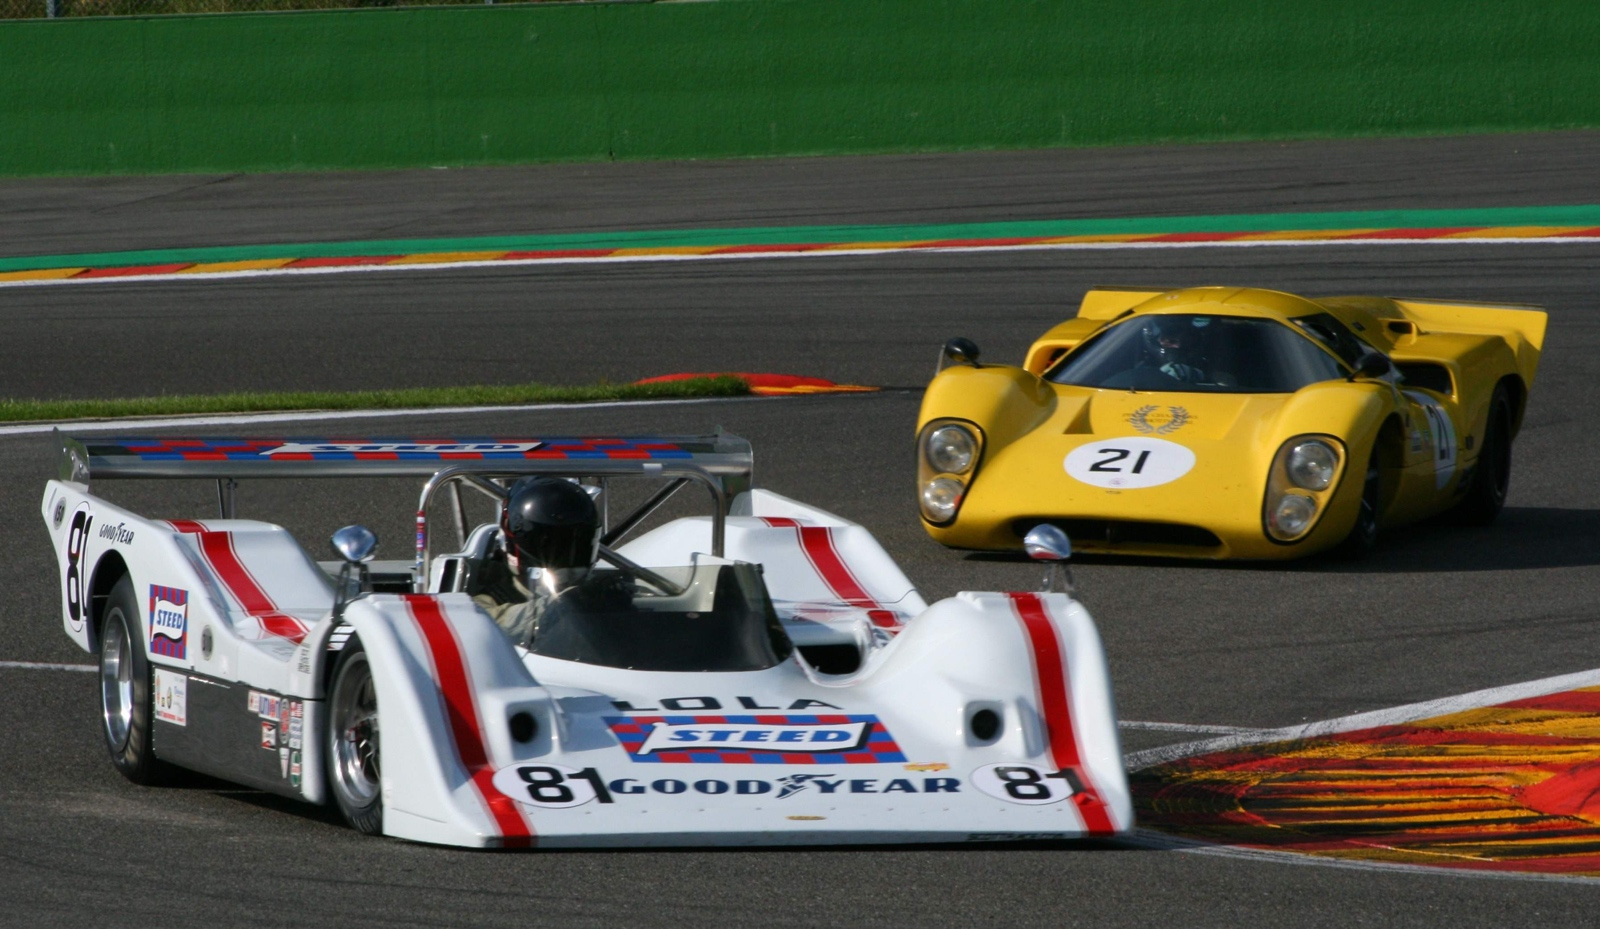 hm8-can-am-race-1